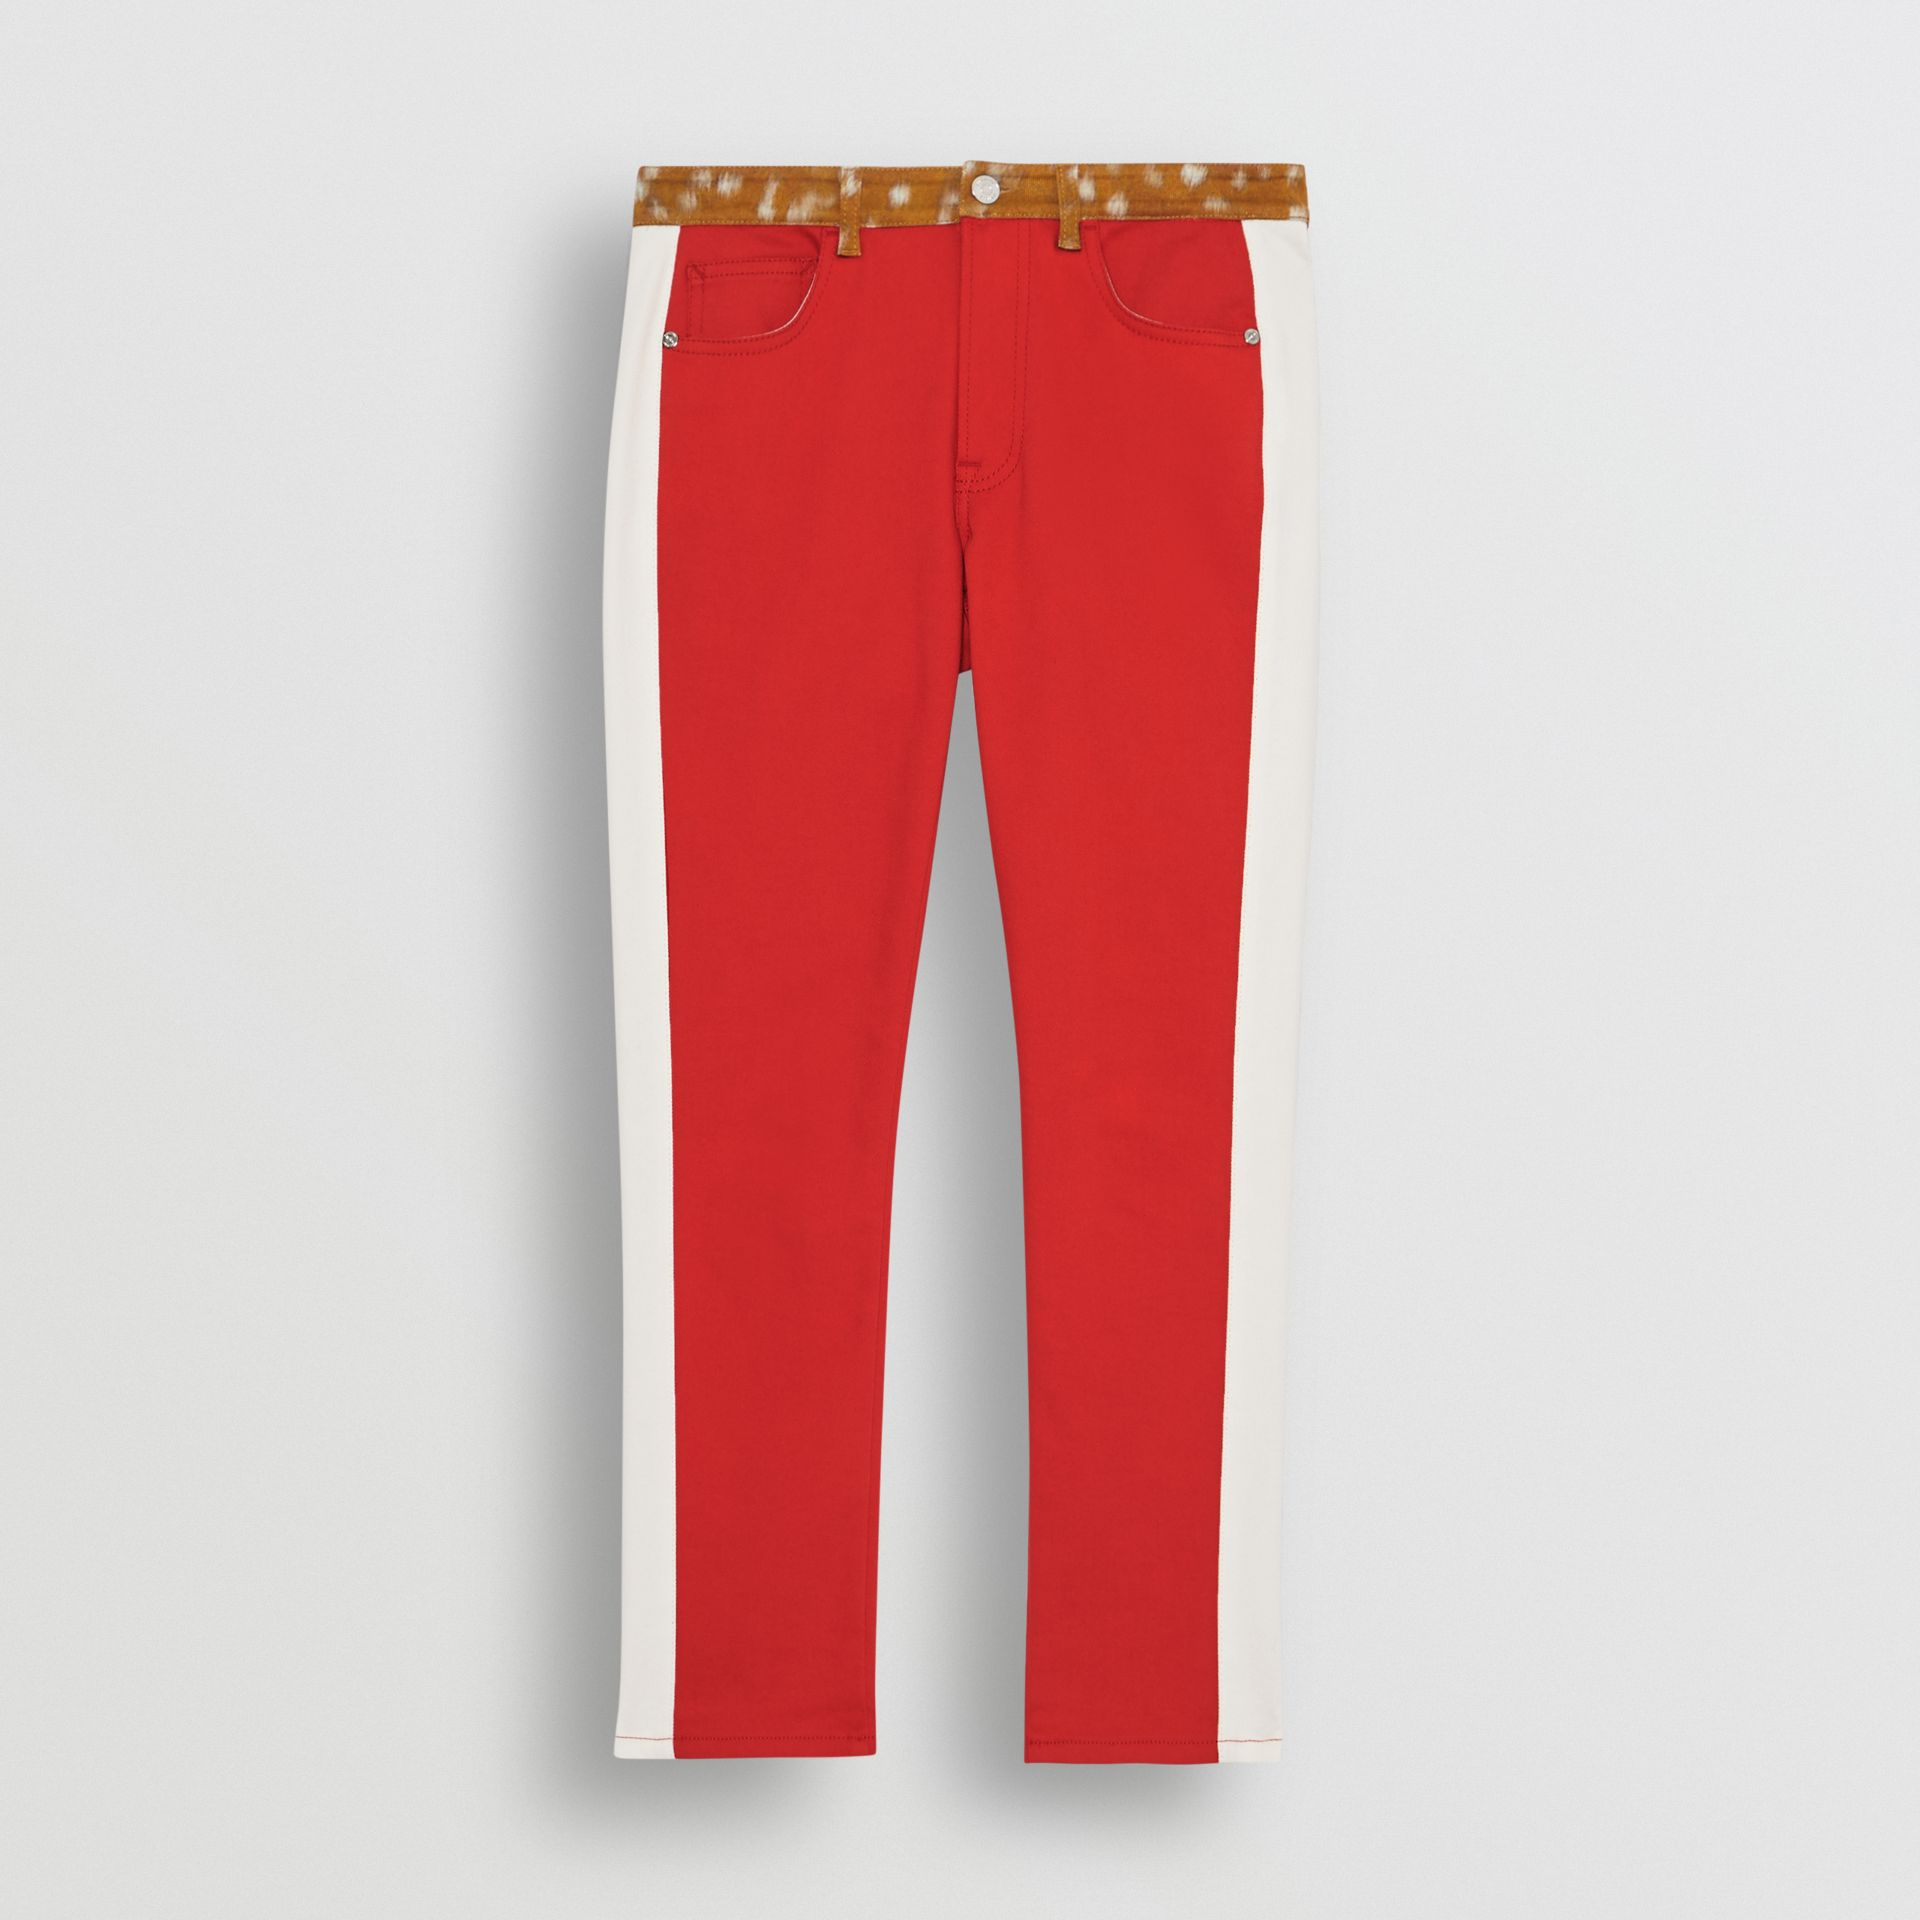 Straight Fit Deer Print Trim Japanese Denim Jeans in Bright Red - Women | Burberry United States - gallery image 3